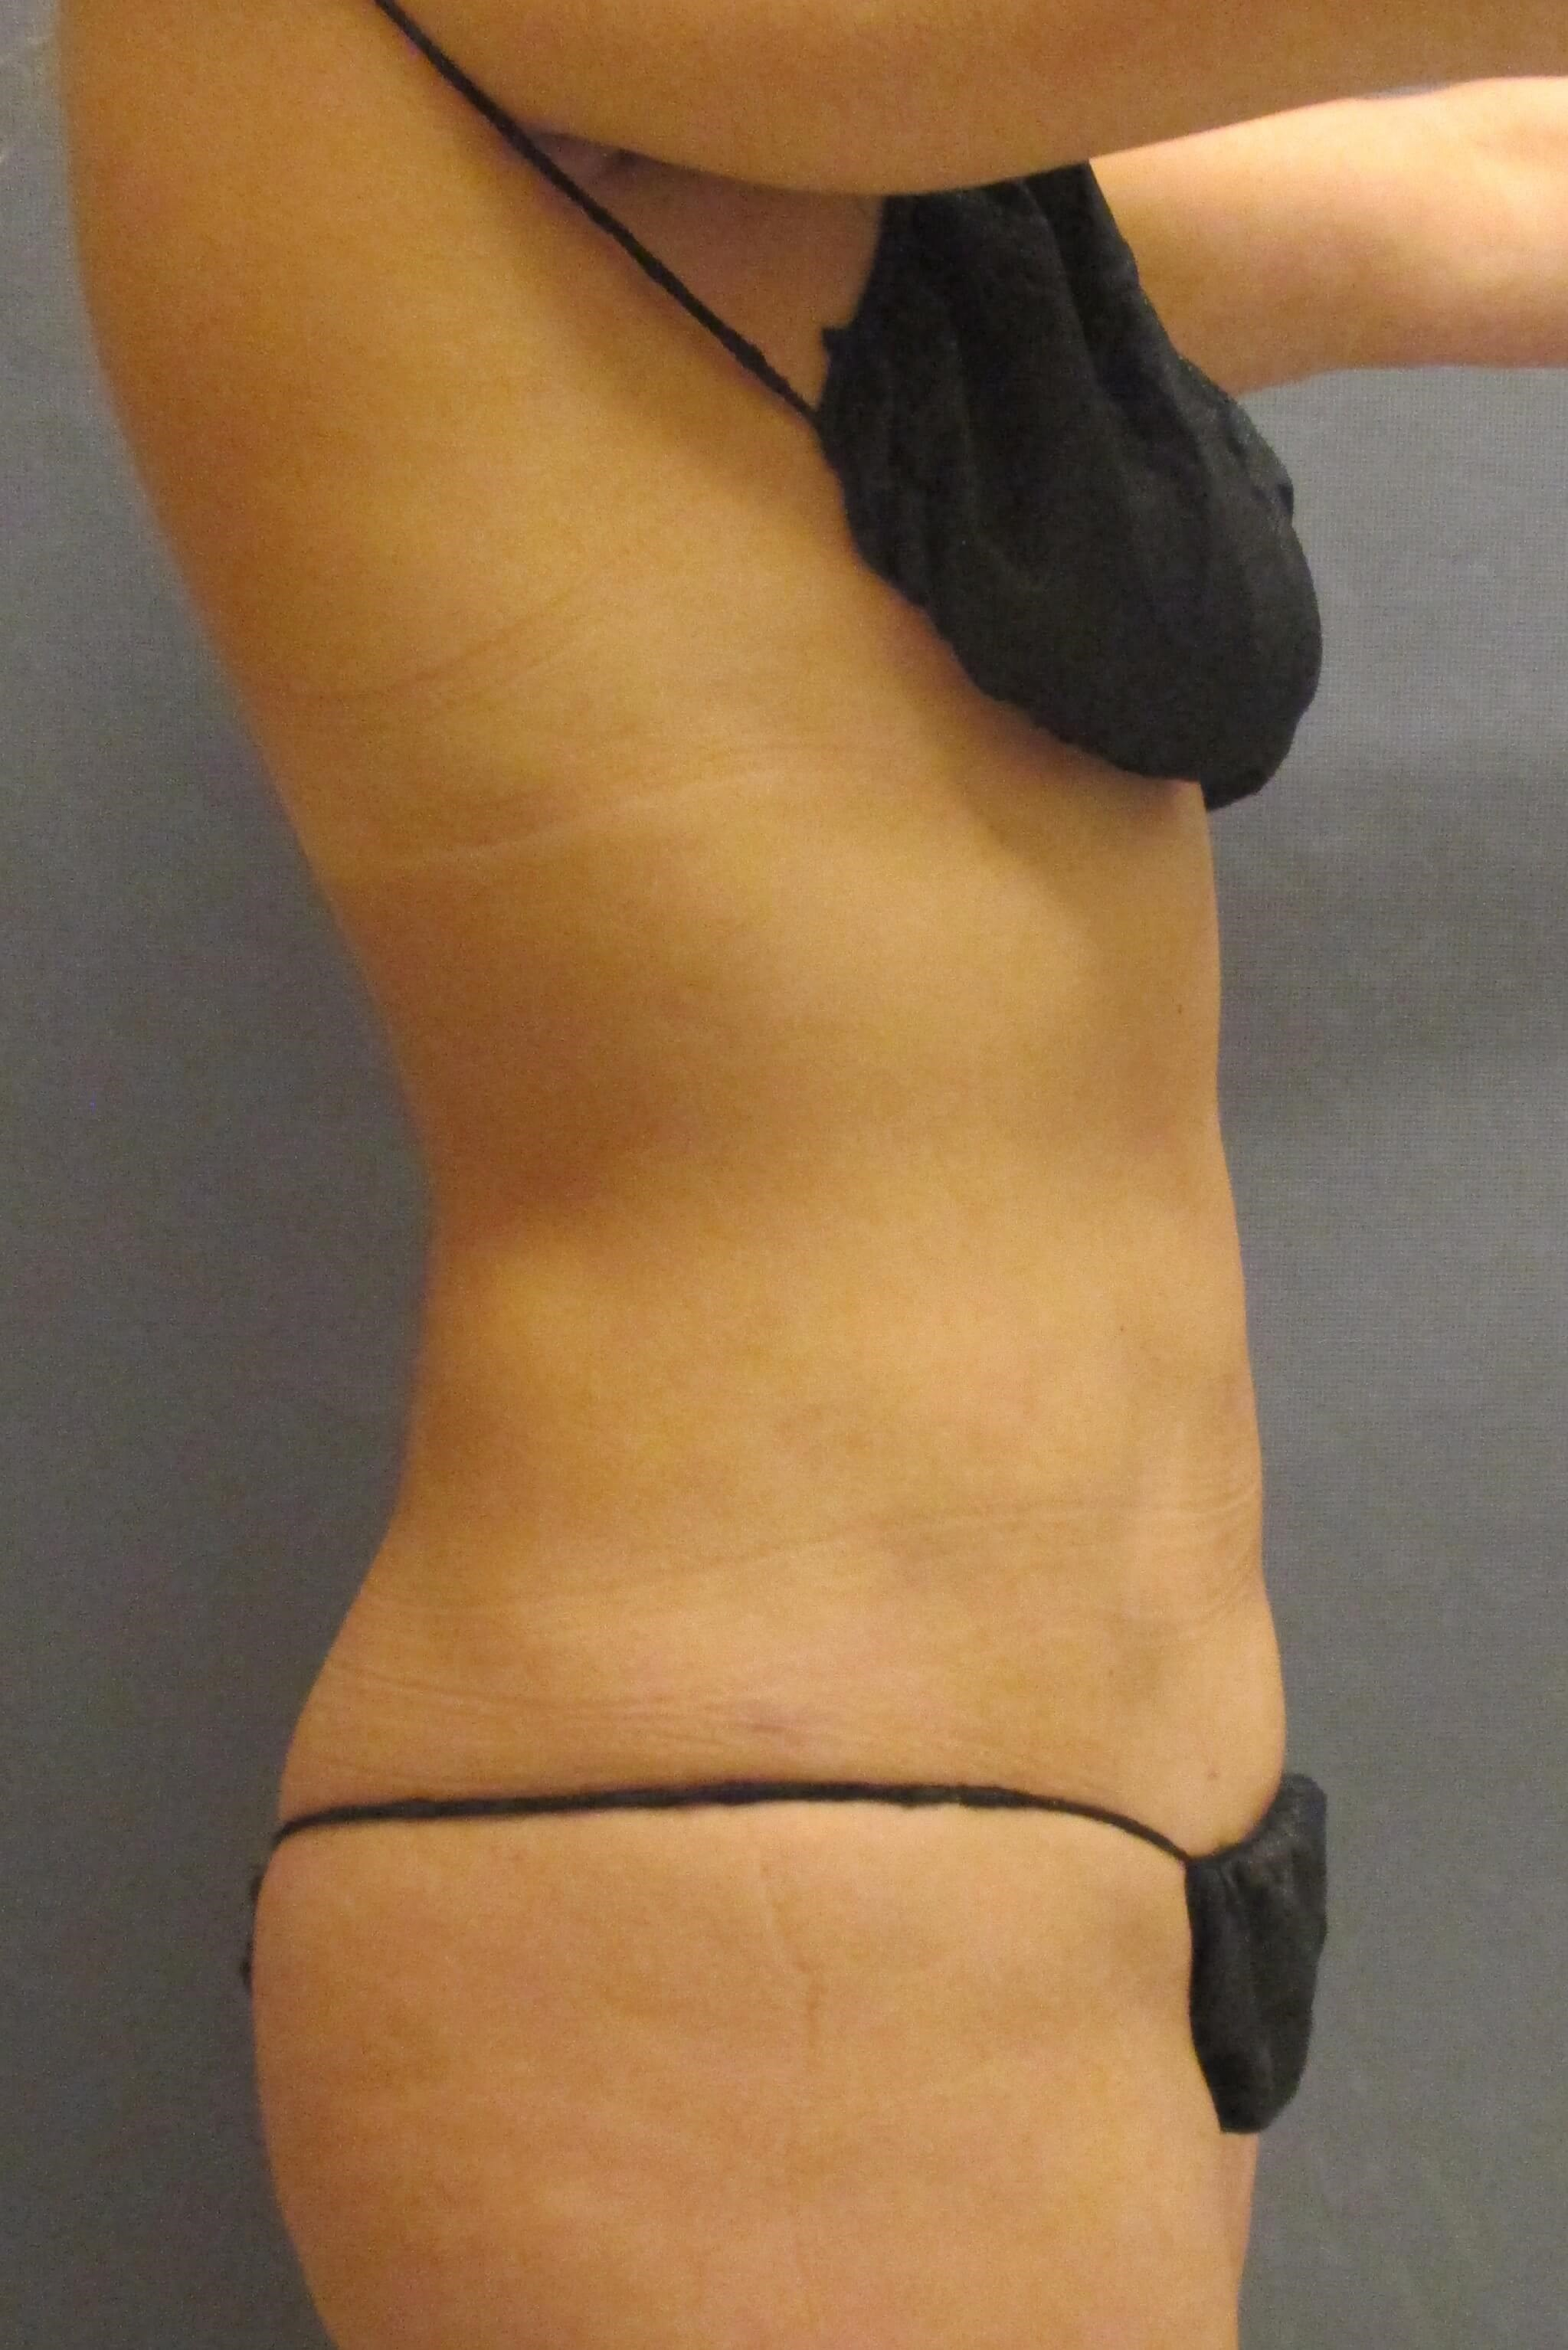 Liposuction of Abdomen & Waist 6 months post